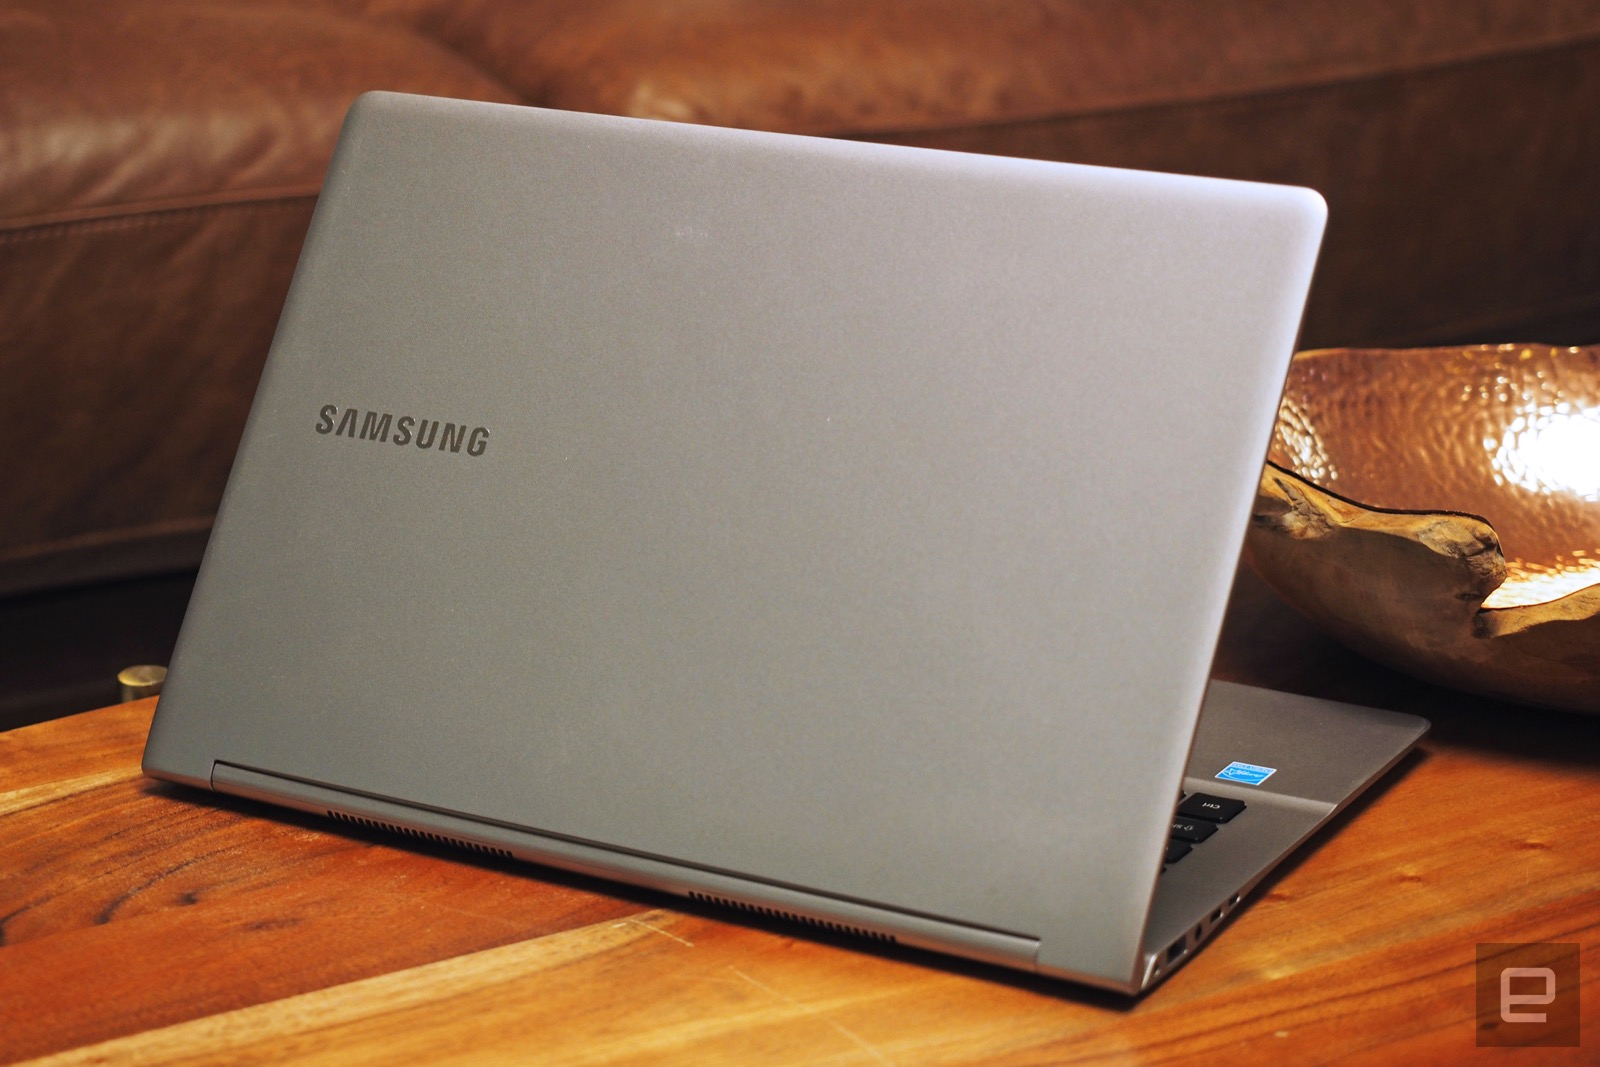 Notebook samsung 9 - As Is Always The Case The Samsung Notebook 9 Isn T For Everyone But I Suspect It Will Hit The Sweet Spot For Many People It S Exceptionally Thin And